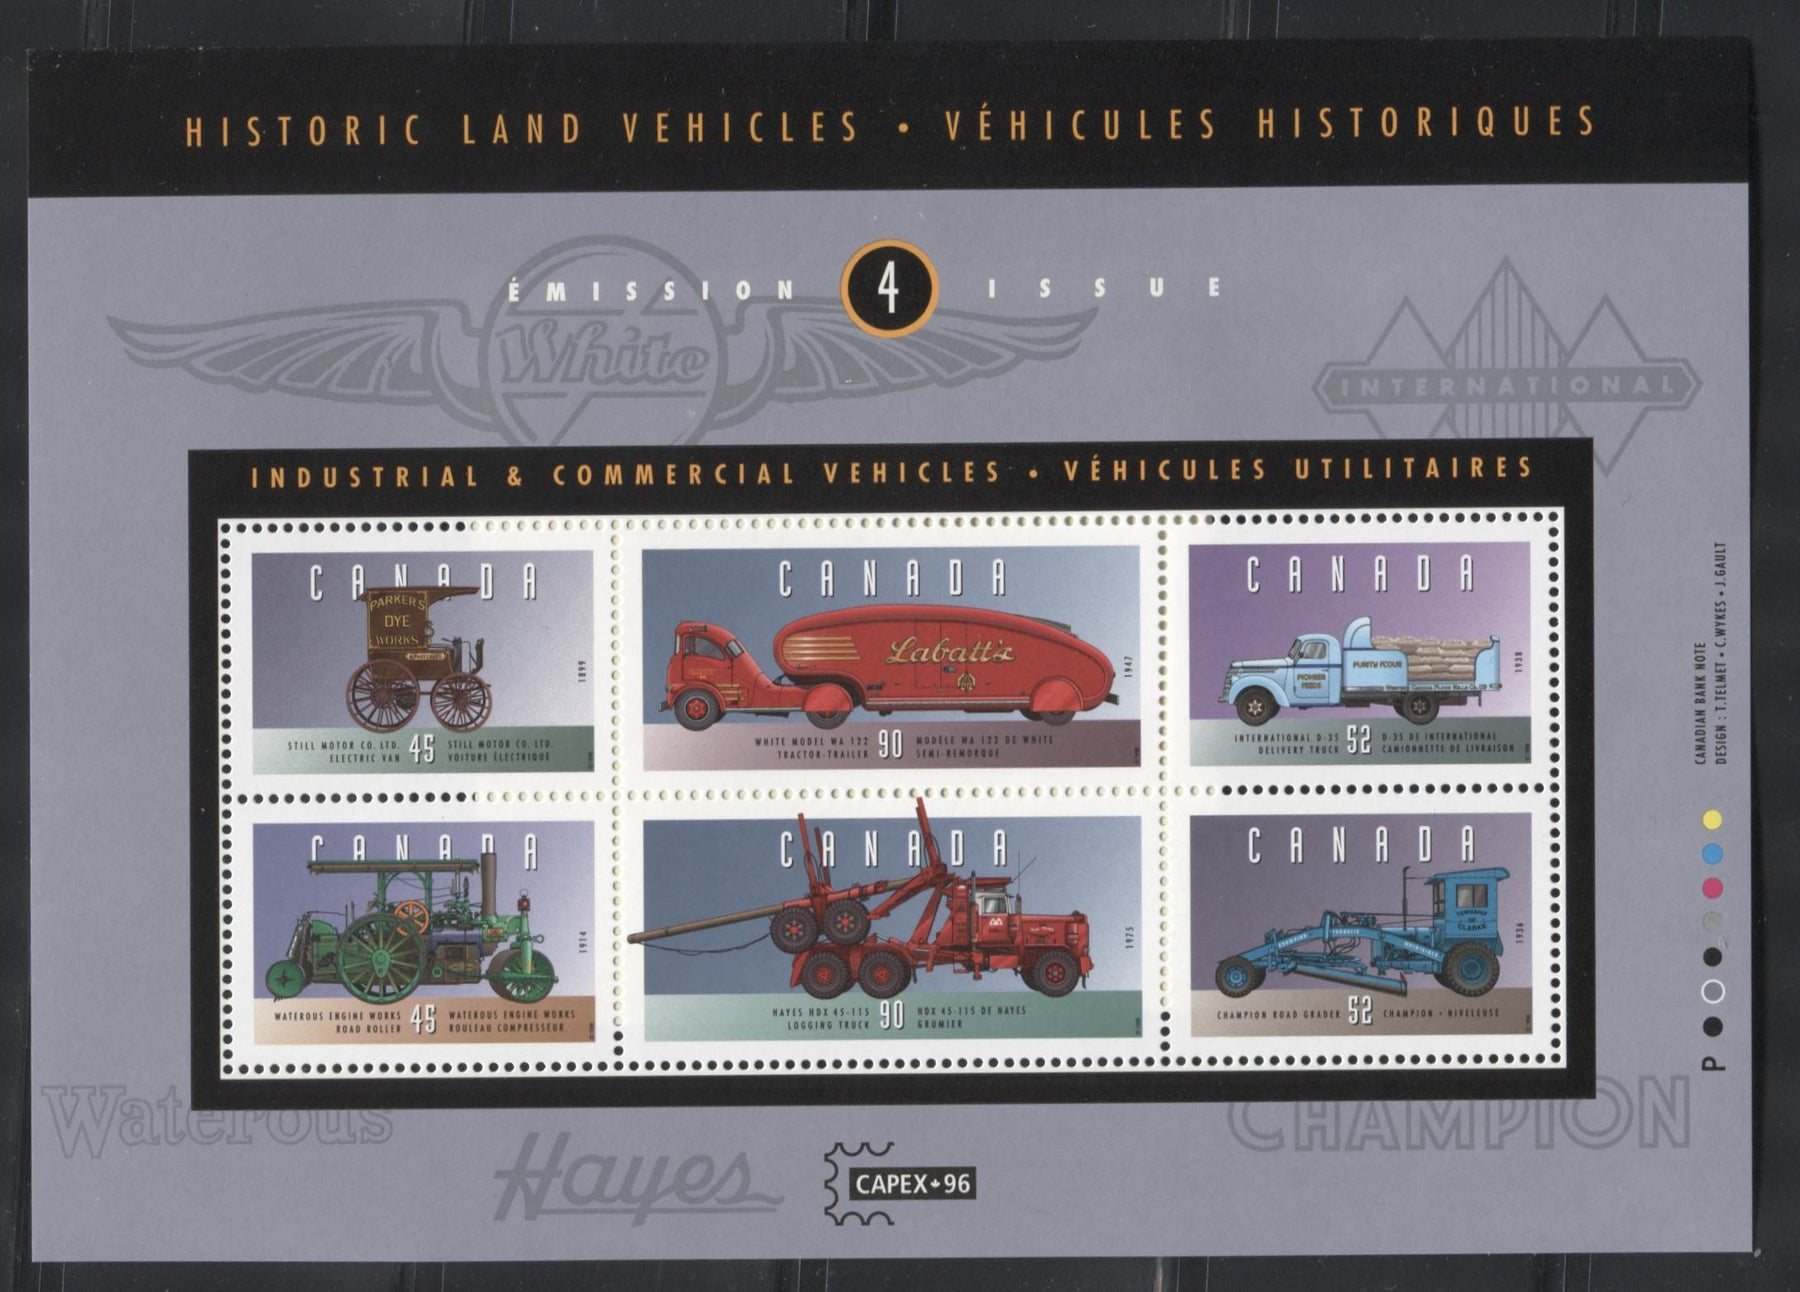 Canada #1604ii 45c-90c Multicoloured, 1996 Historic Land Vehicles Issue, VFNH Example of the Souvenir Sheet on the Scarcer High Fluorescent Paper